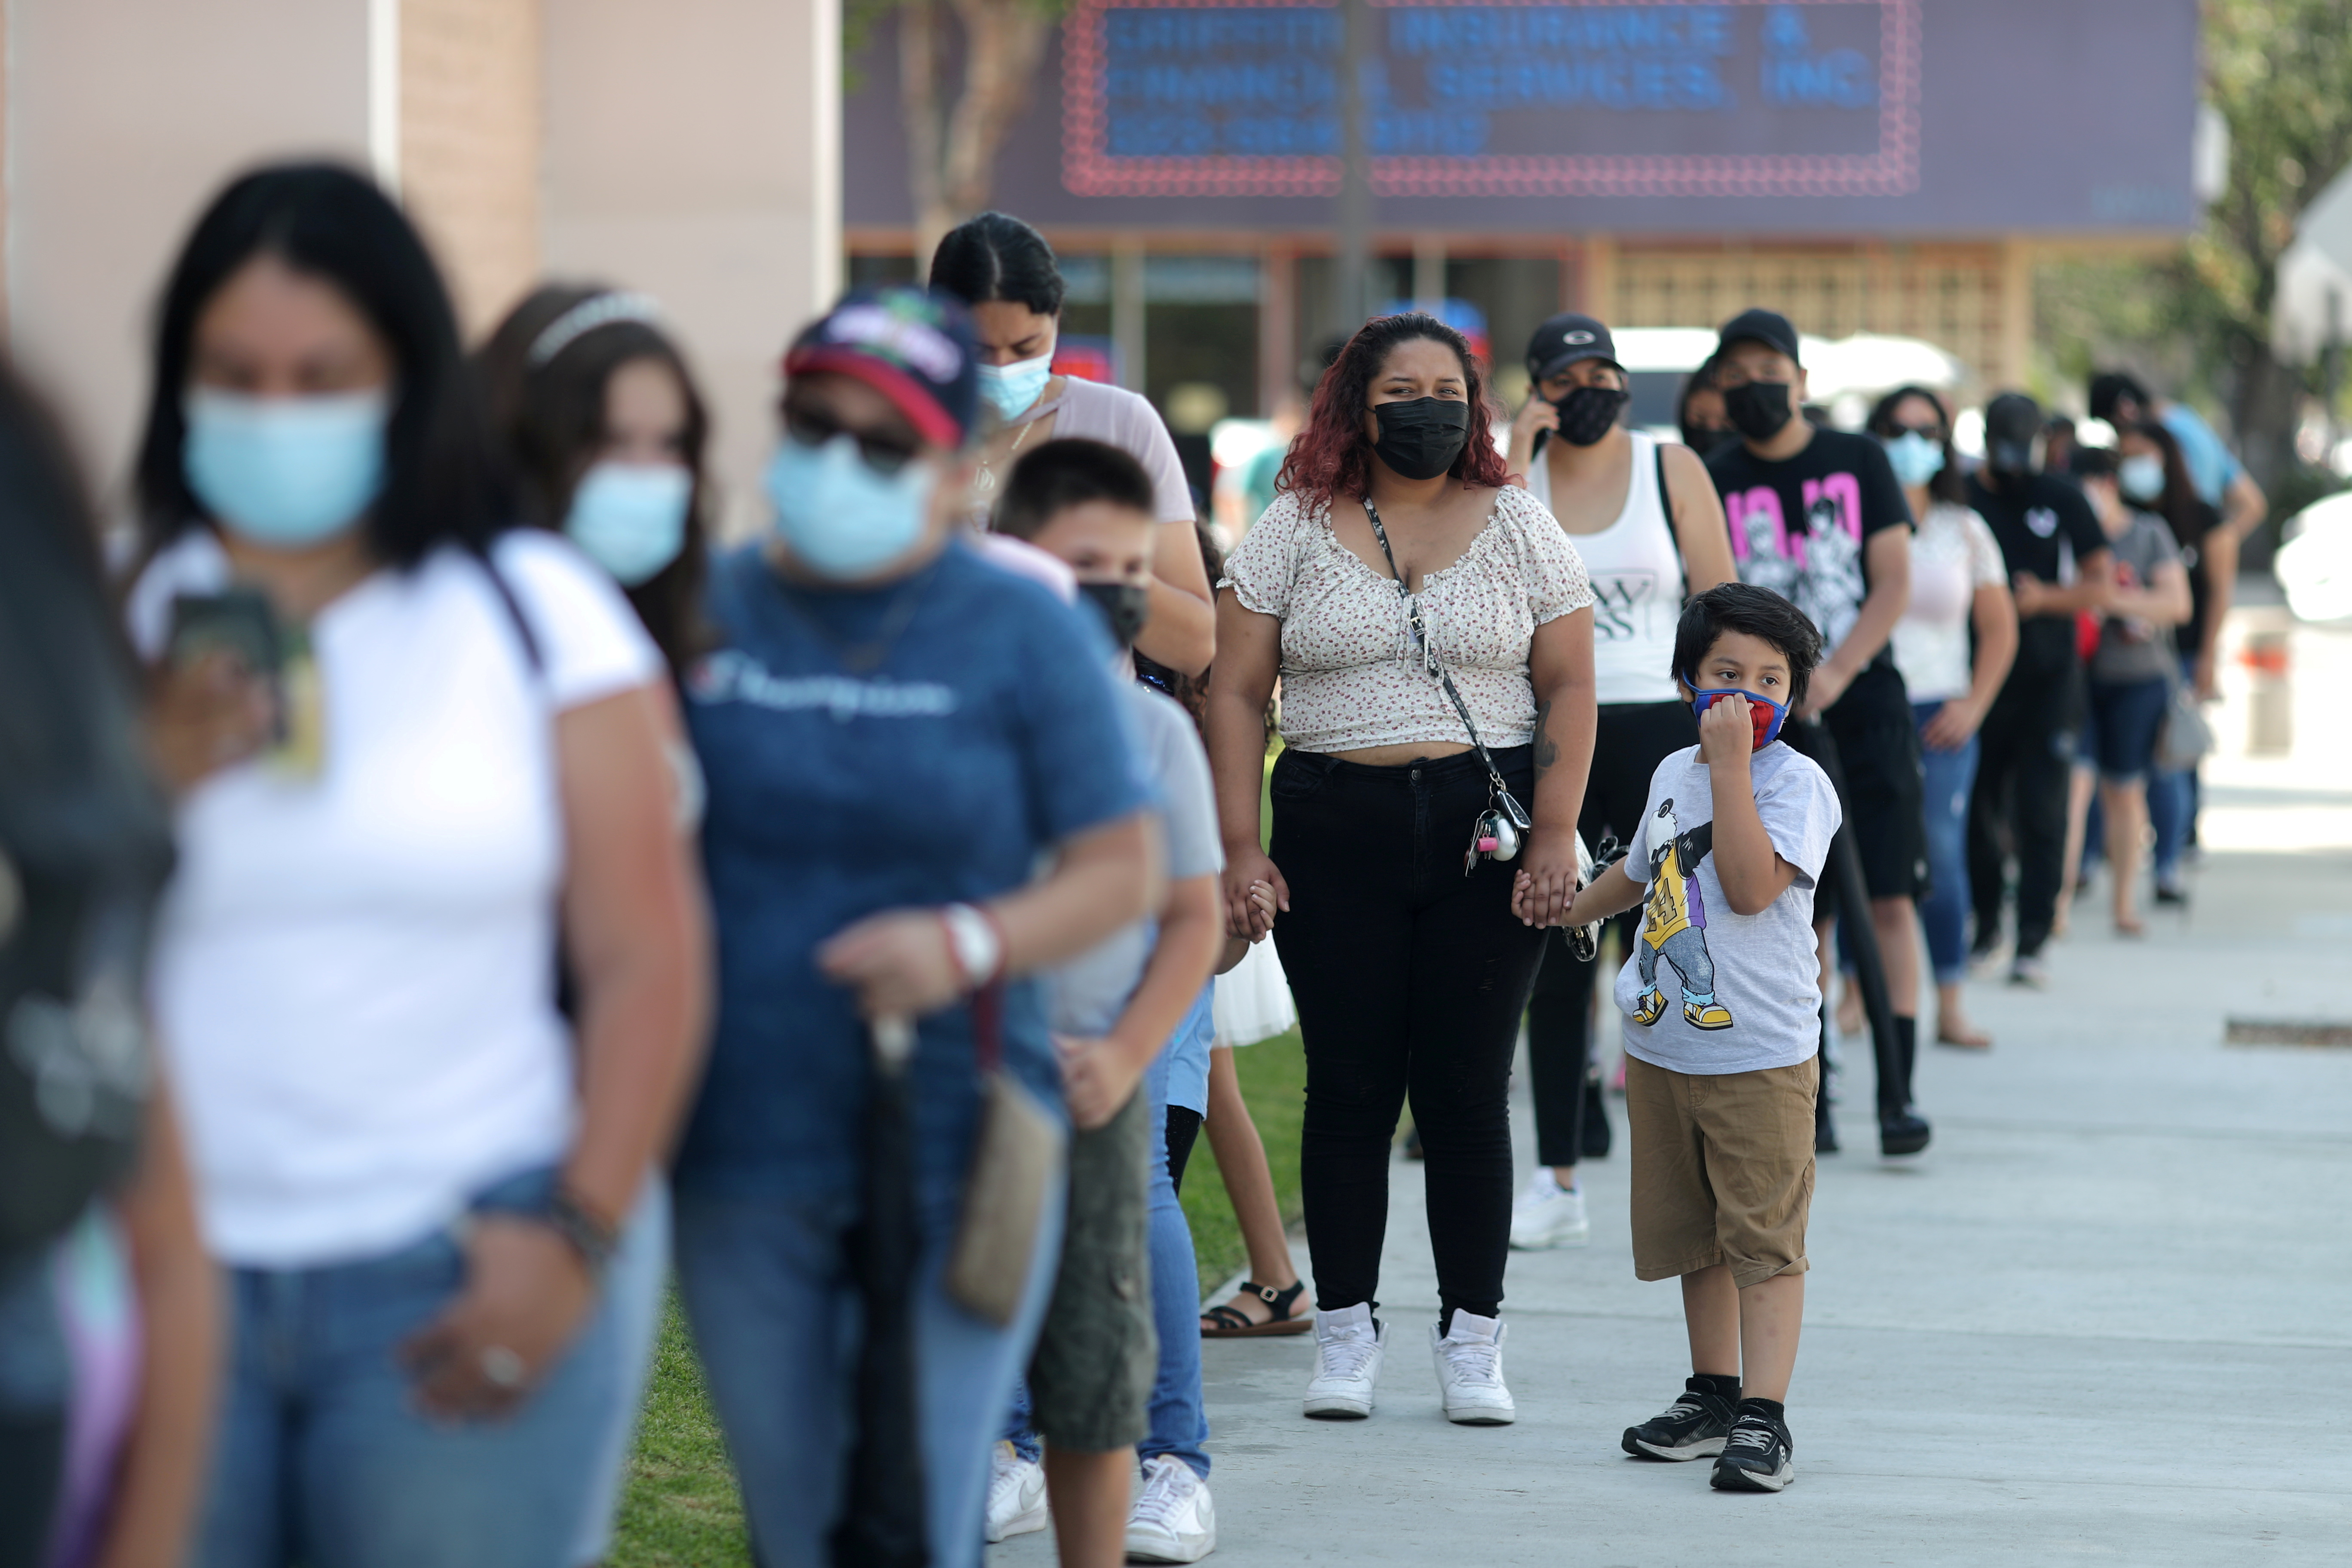 People wait in line for a coronavirus disease (COVID-19) test at a back-to-school clinic in South Gate, Los Angeles, California, U.S., August 12, 2021. REUTERS/Lucy Nicholson/File Photo